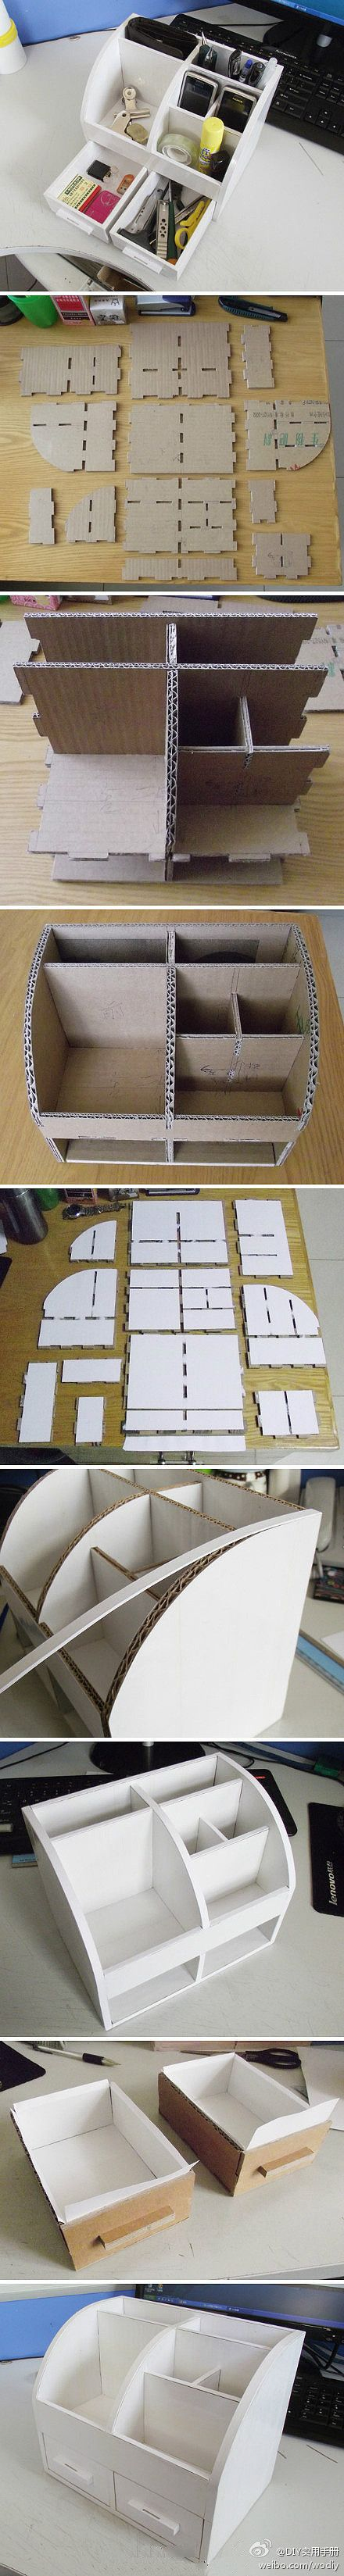 DIY Cardboard Organizer diy craft crafts easy crafts craft idea diy ideas